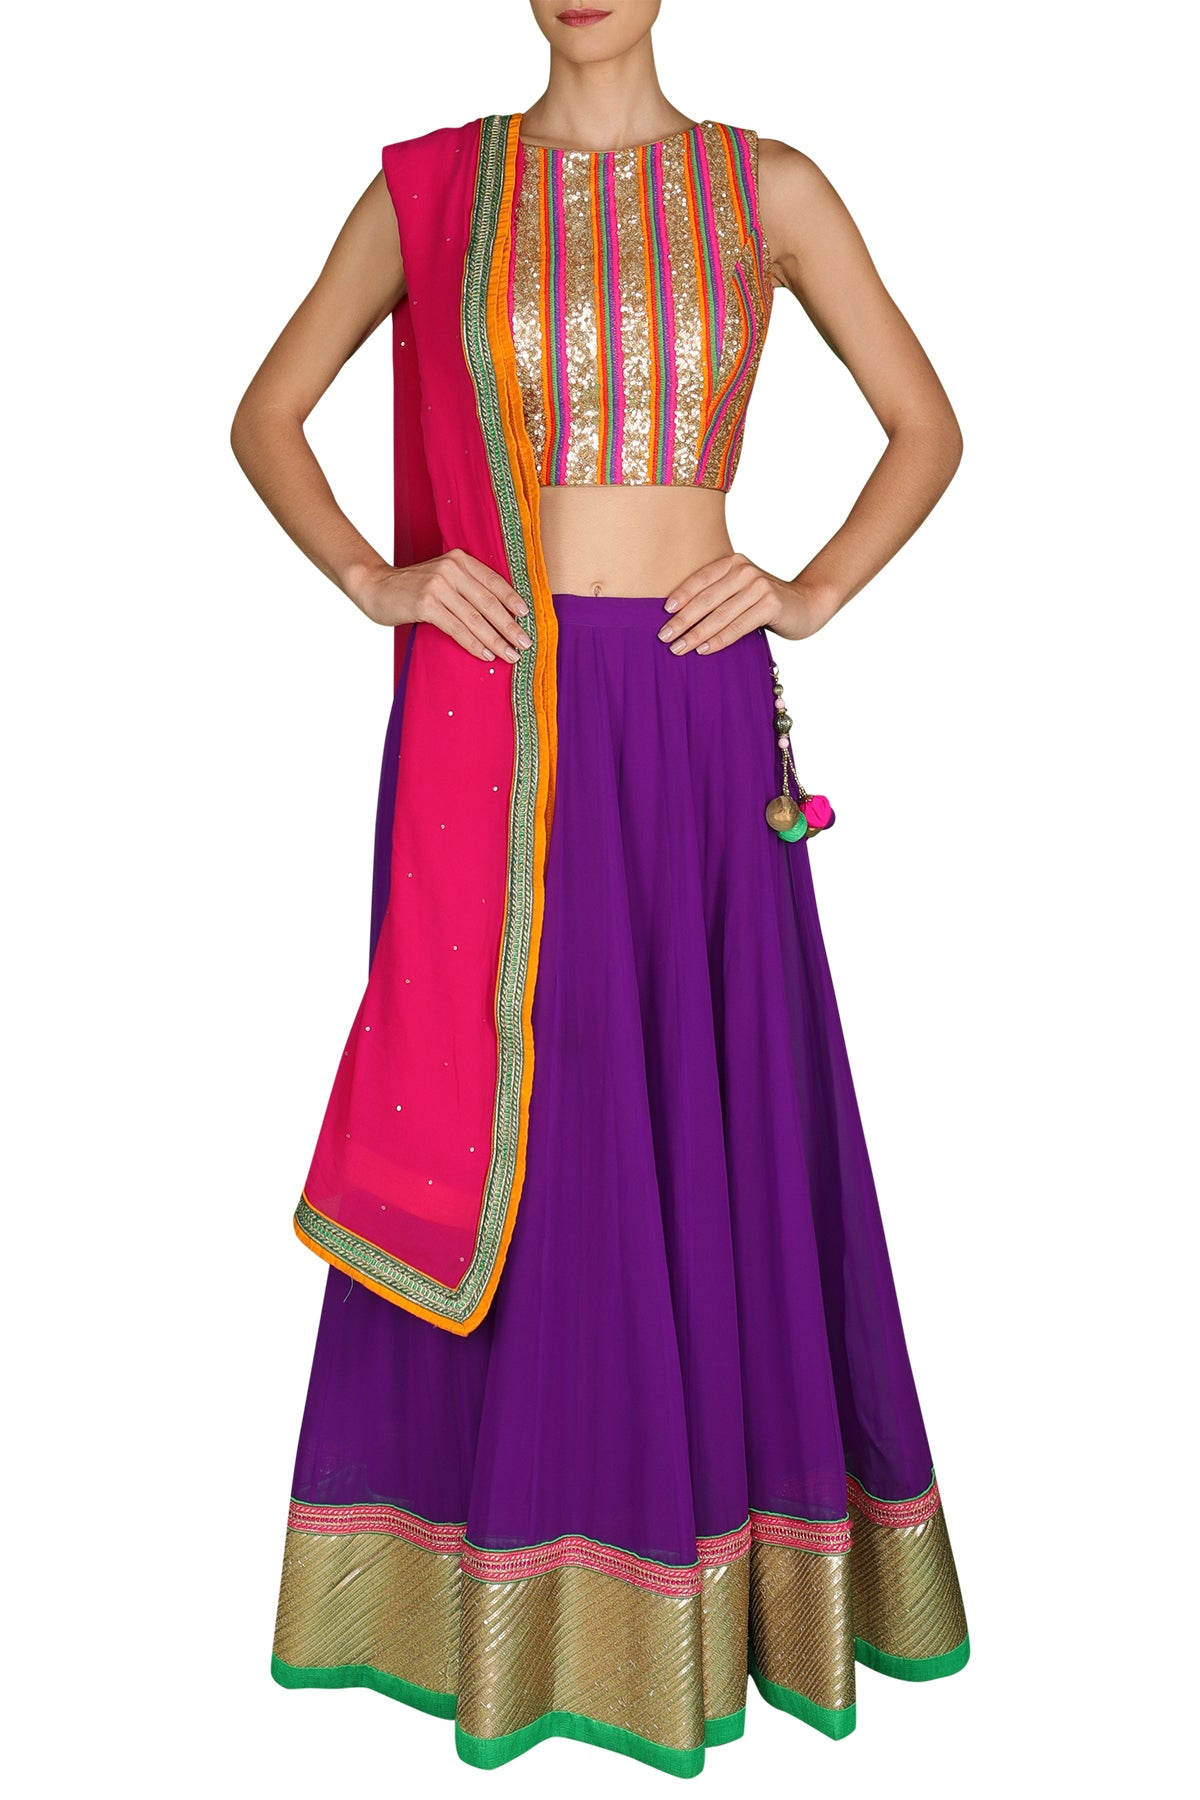 Lose yourself to the vibrant multi-colours of this vivacious wonder. Slip into its high neck sequin blouse with a futuristic feel and its purple georgette lehenga with a pink and orange shaded dupatta.